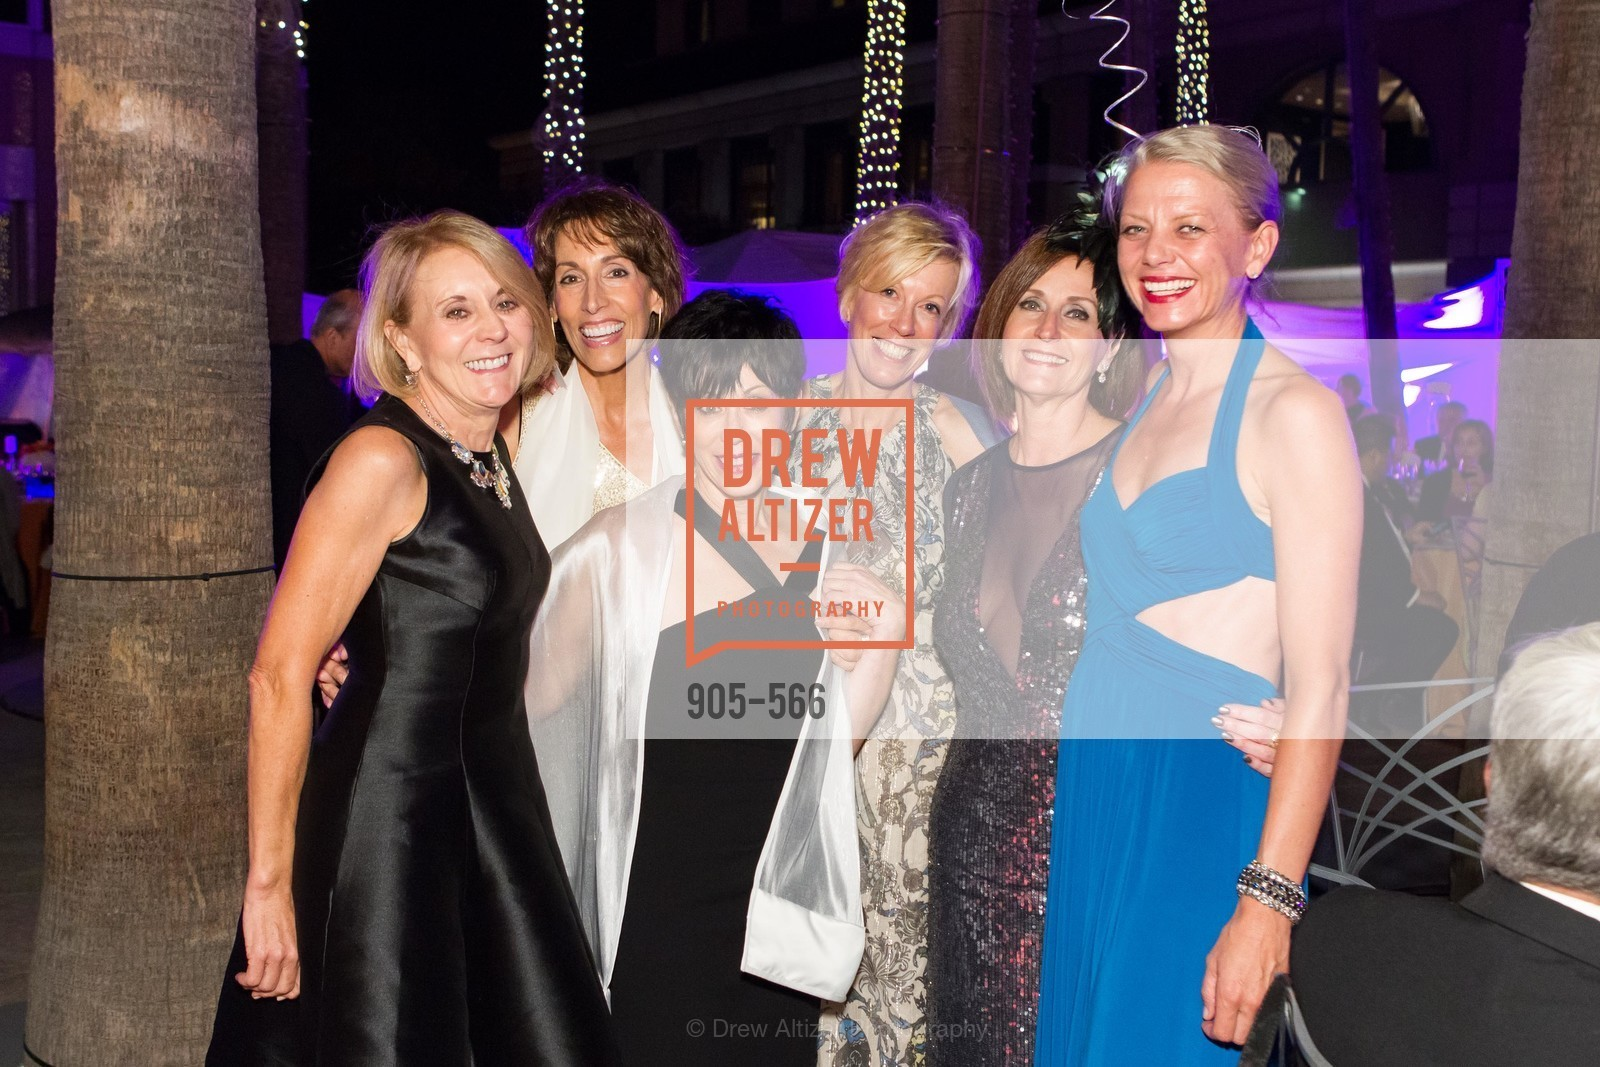 Mary Mocas, Rana Davis, Hidy Shandell, Wanda Kownacki, Aileen Silver, SAN JOSE MUSEUM OF ART'S Spectrum Gala - 45th Anniversary, US, September 13th, 2014,Drew Altizer, Drew Altizer Photography, full-service agency, private events, San Francisco photographer, photographer california